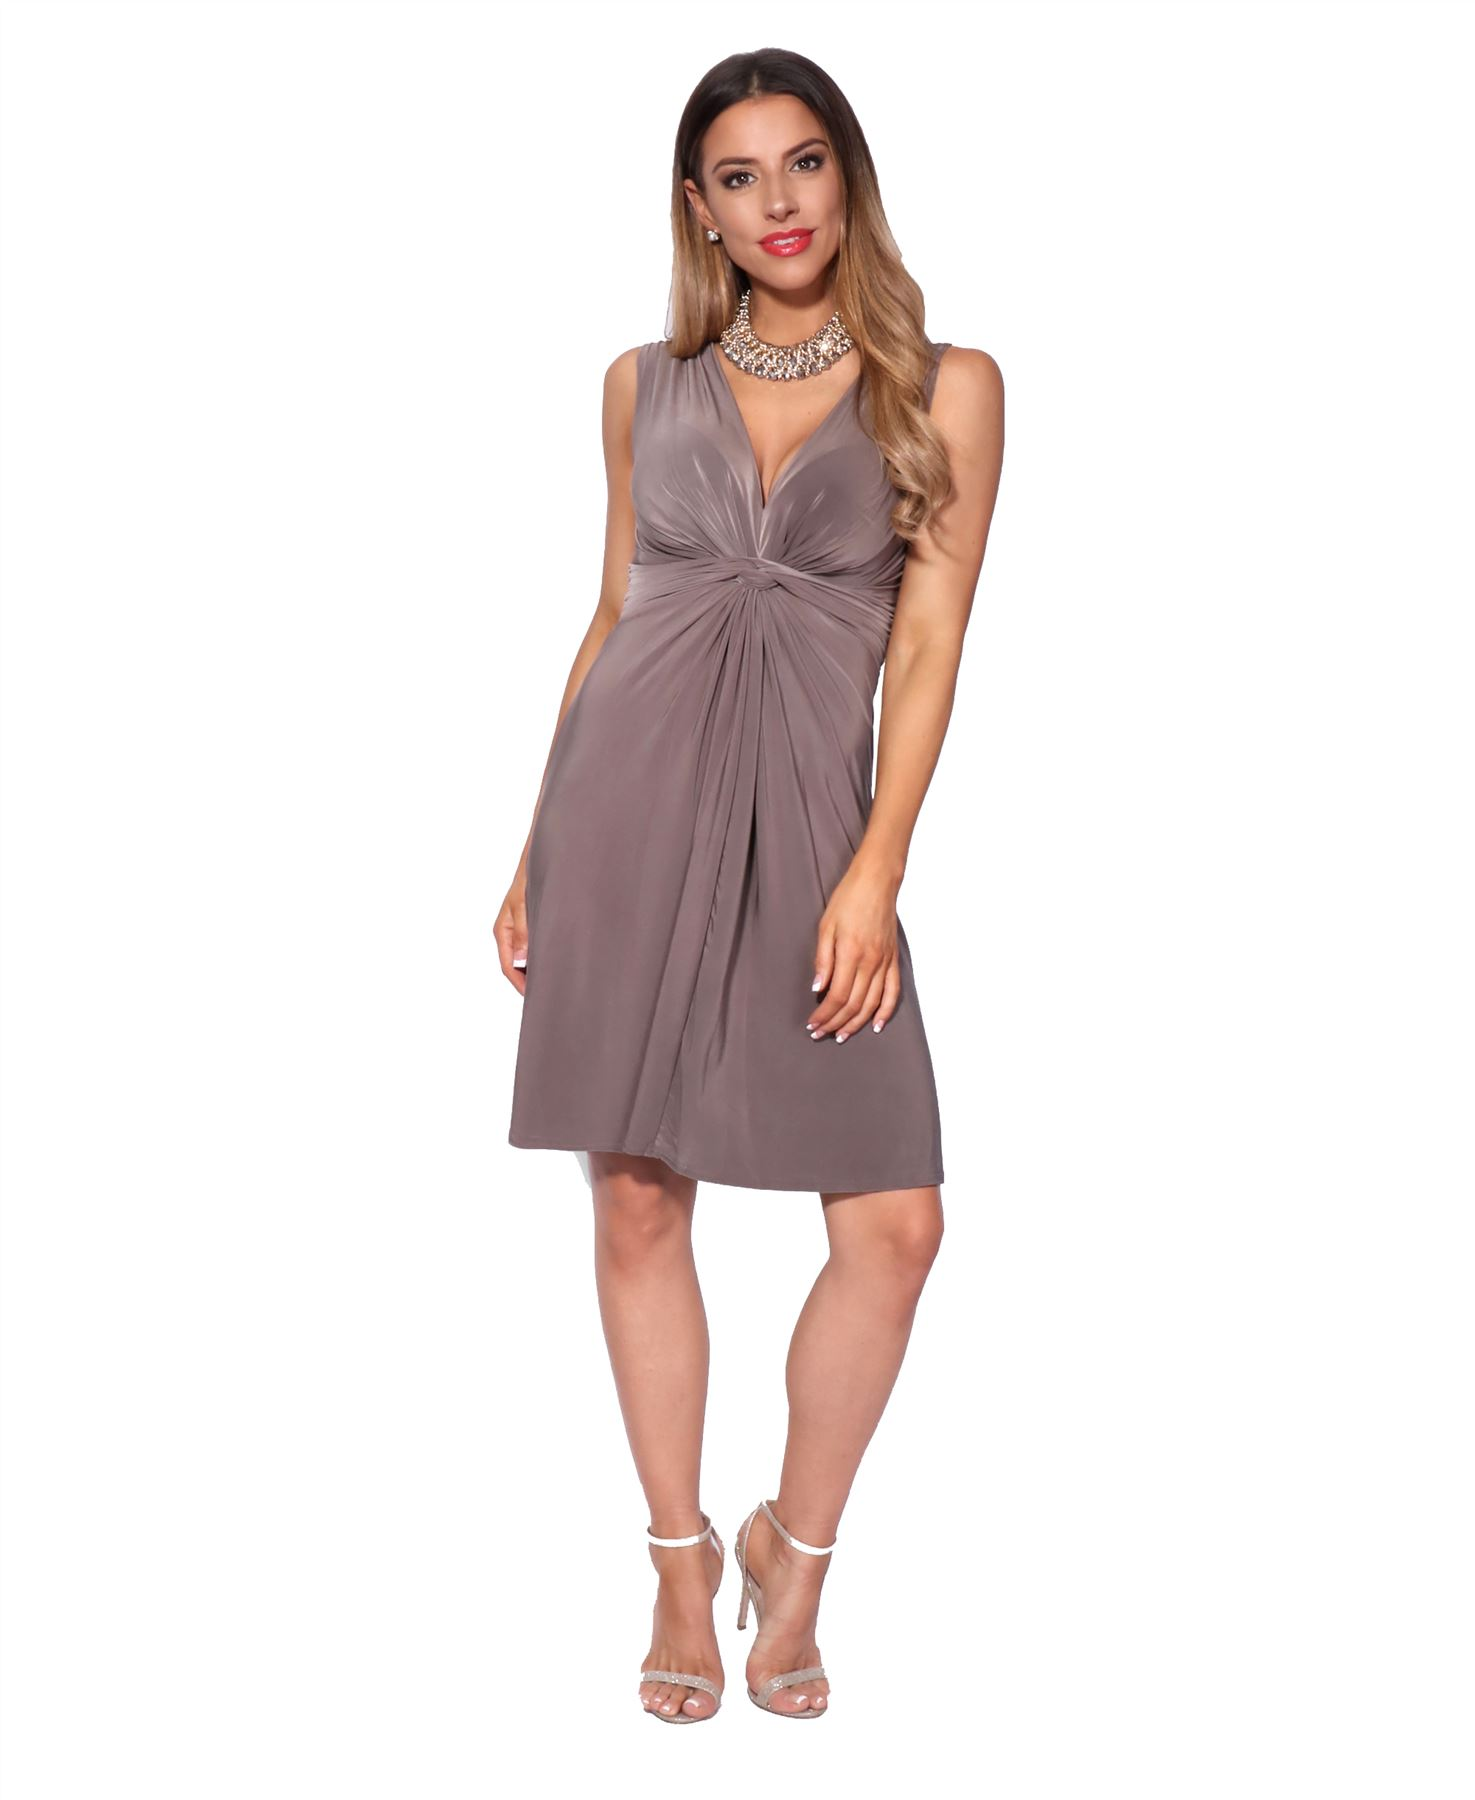 thumbnail 32 - Womens Ladies Ruched Drape Mini Dress Twist Knot Party Summer Casual Beach